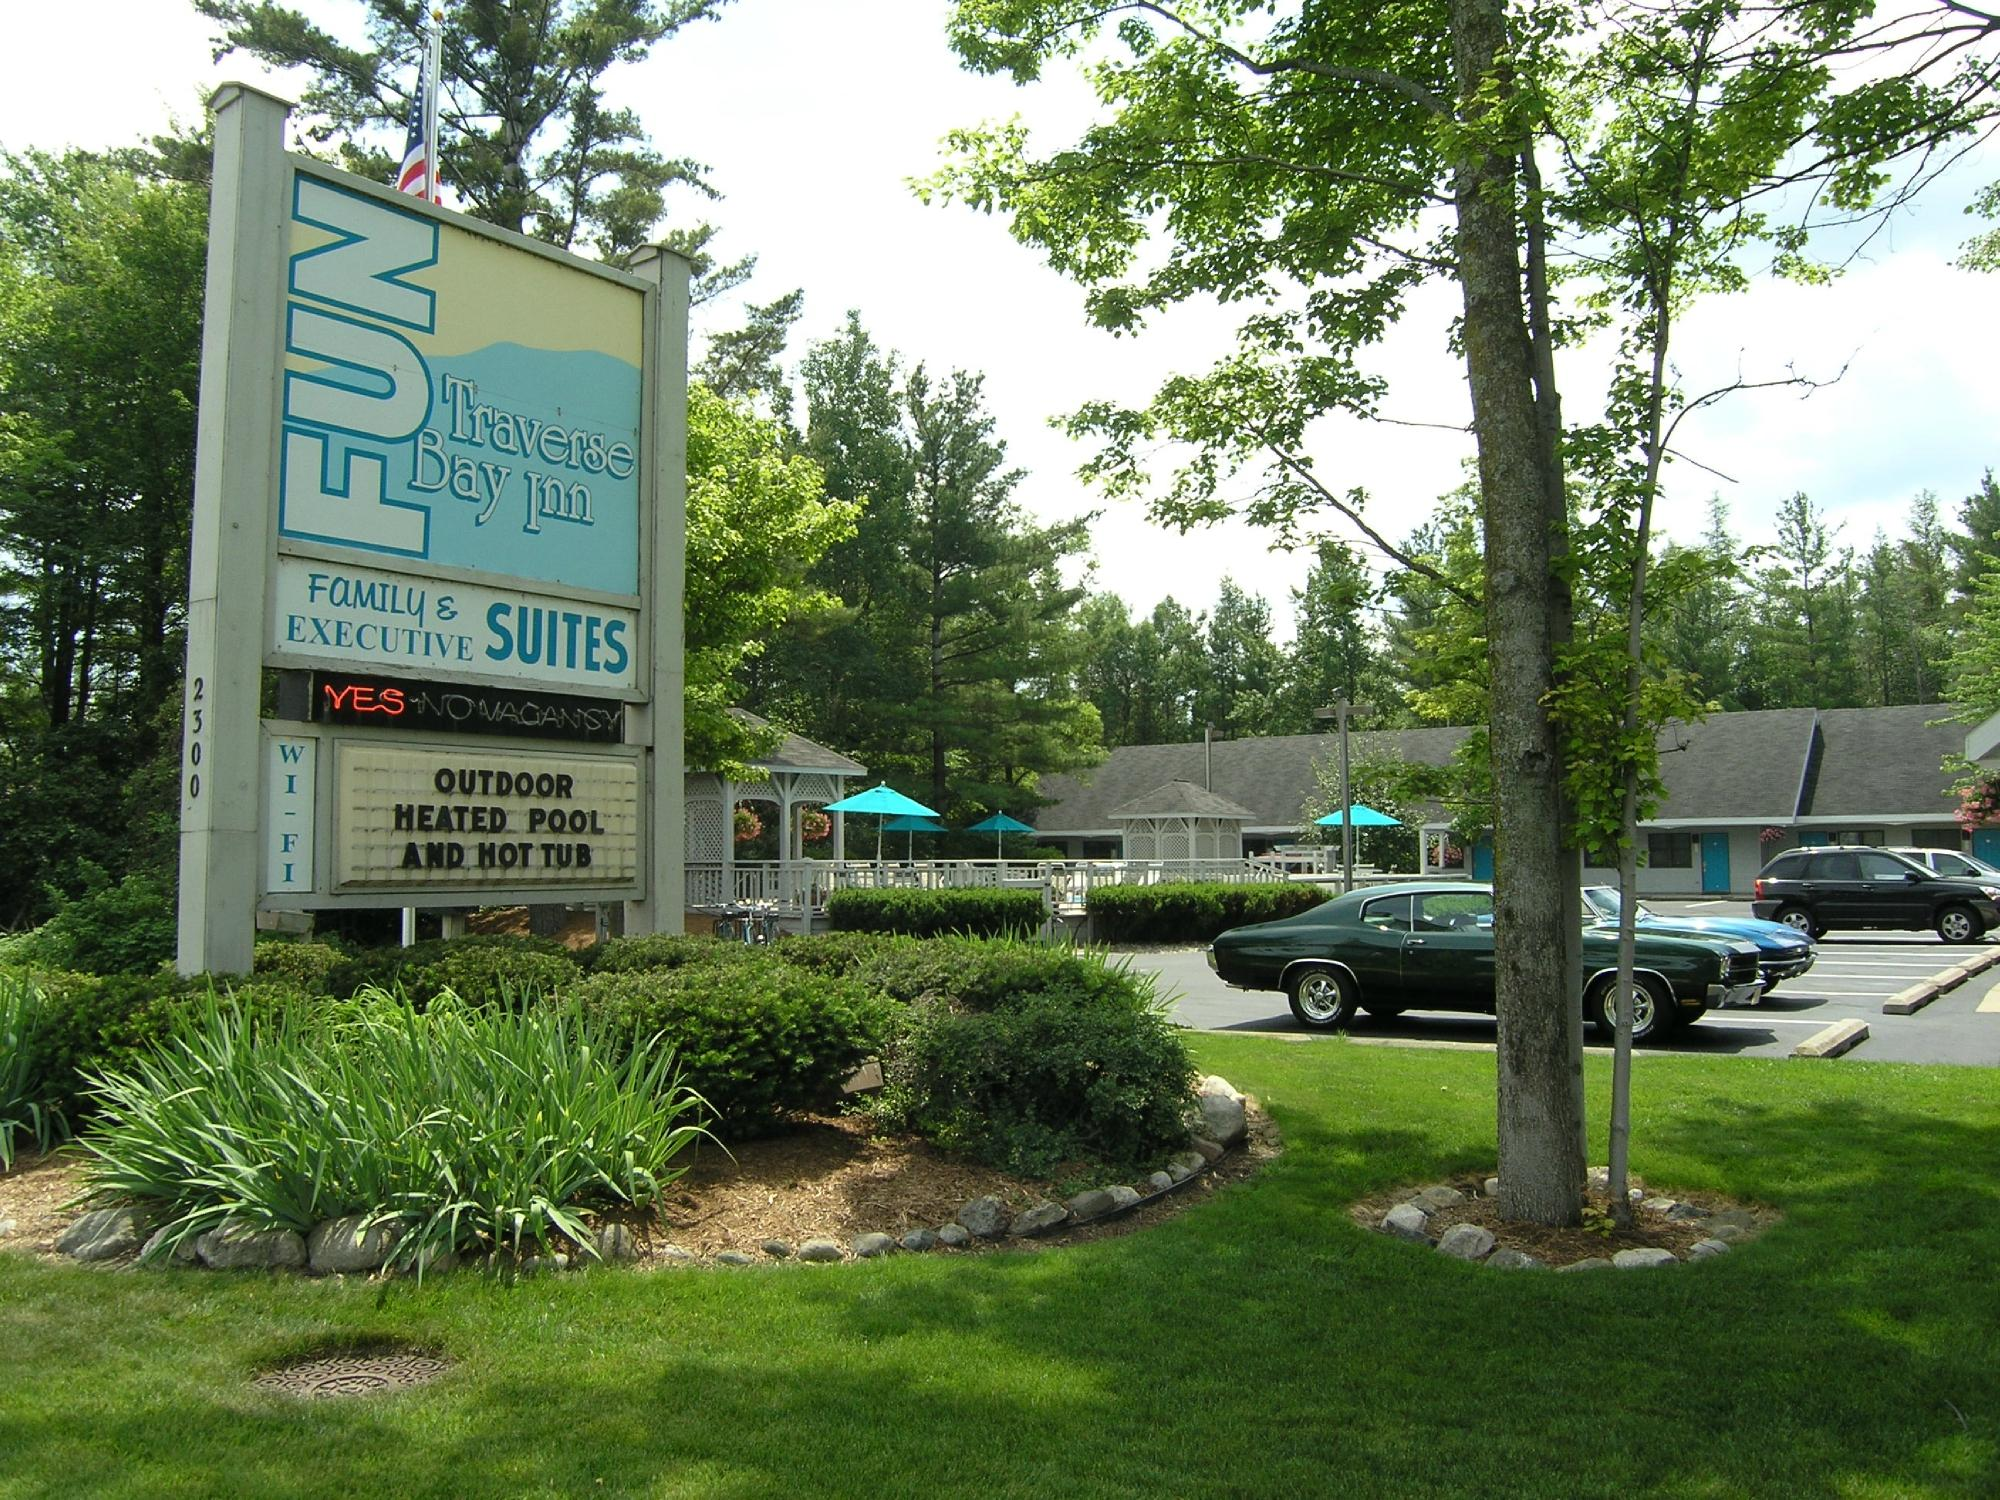 Traverse Bay Inn